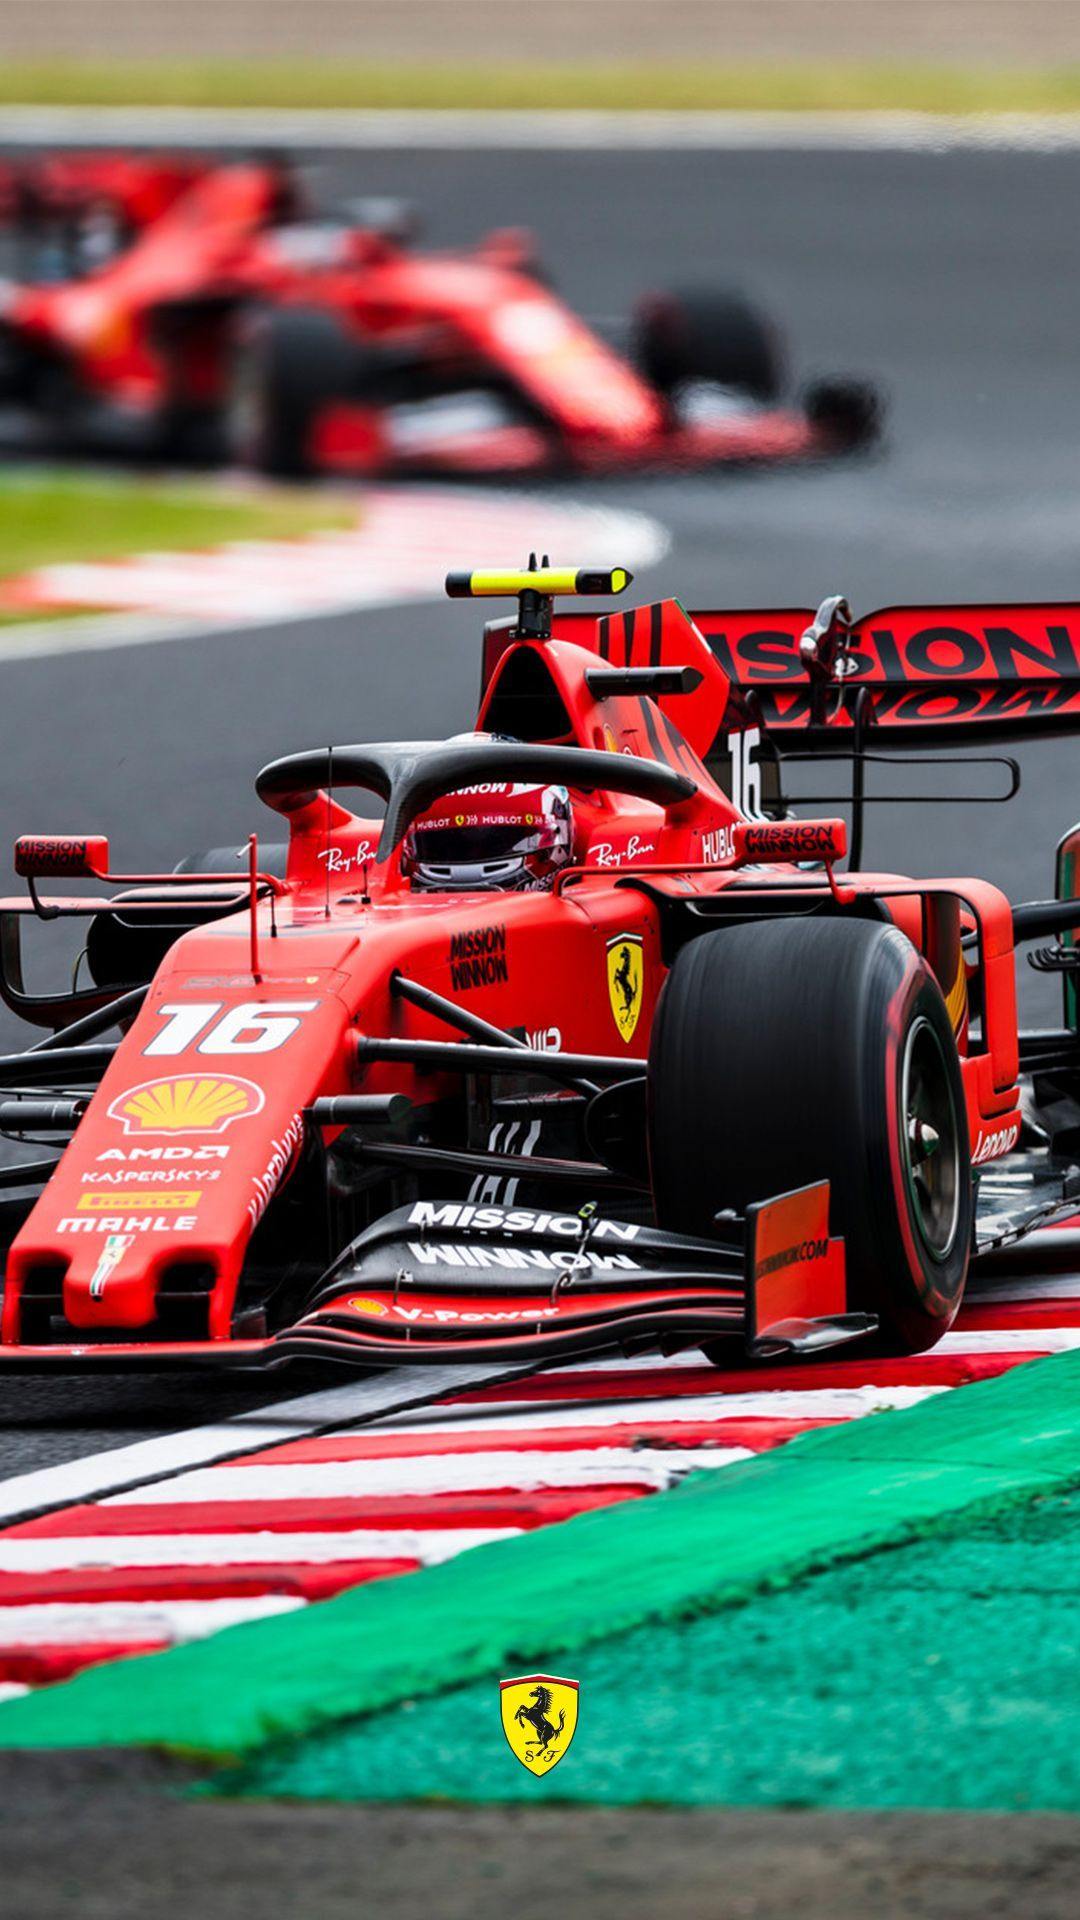 Scuderia Ferrari On Twitter Formula 1 Car Ferrari Car Grand Prix Cars